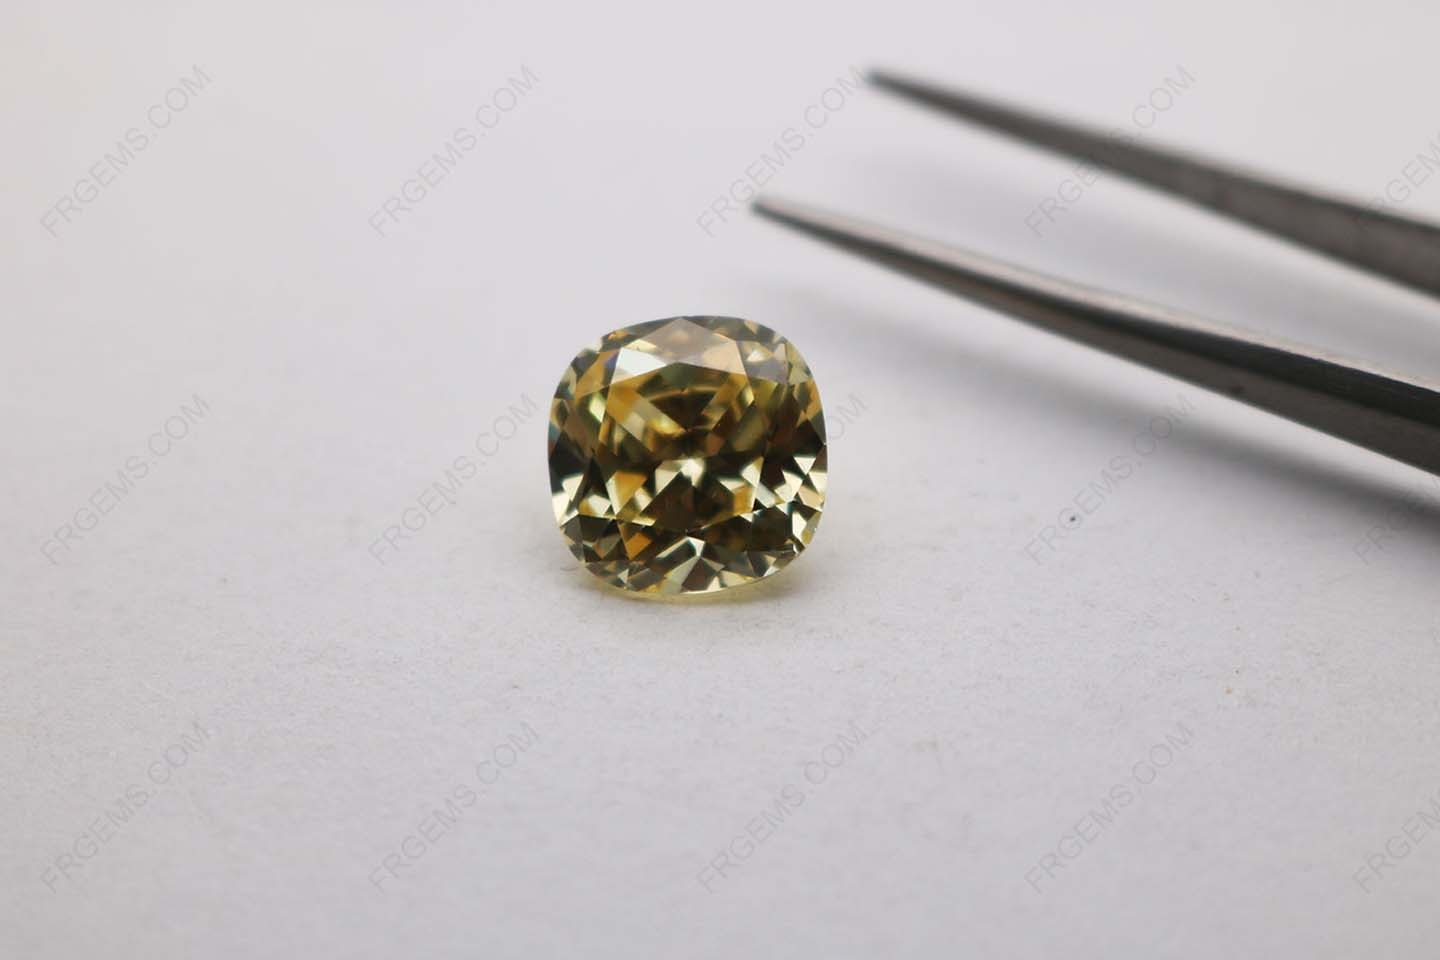 Cubic Zirconia Canary Yellow 3A Cushion Shape Diamond Faceted Cut 12x12mm stones CZ06 IMG_3918